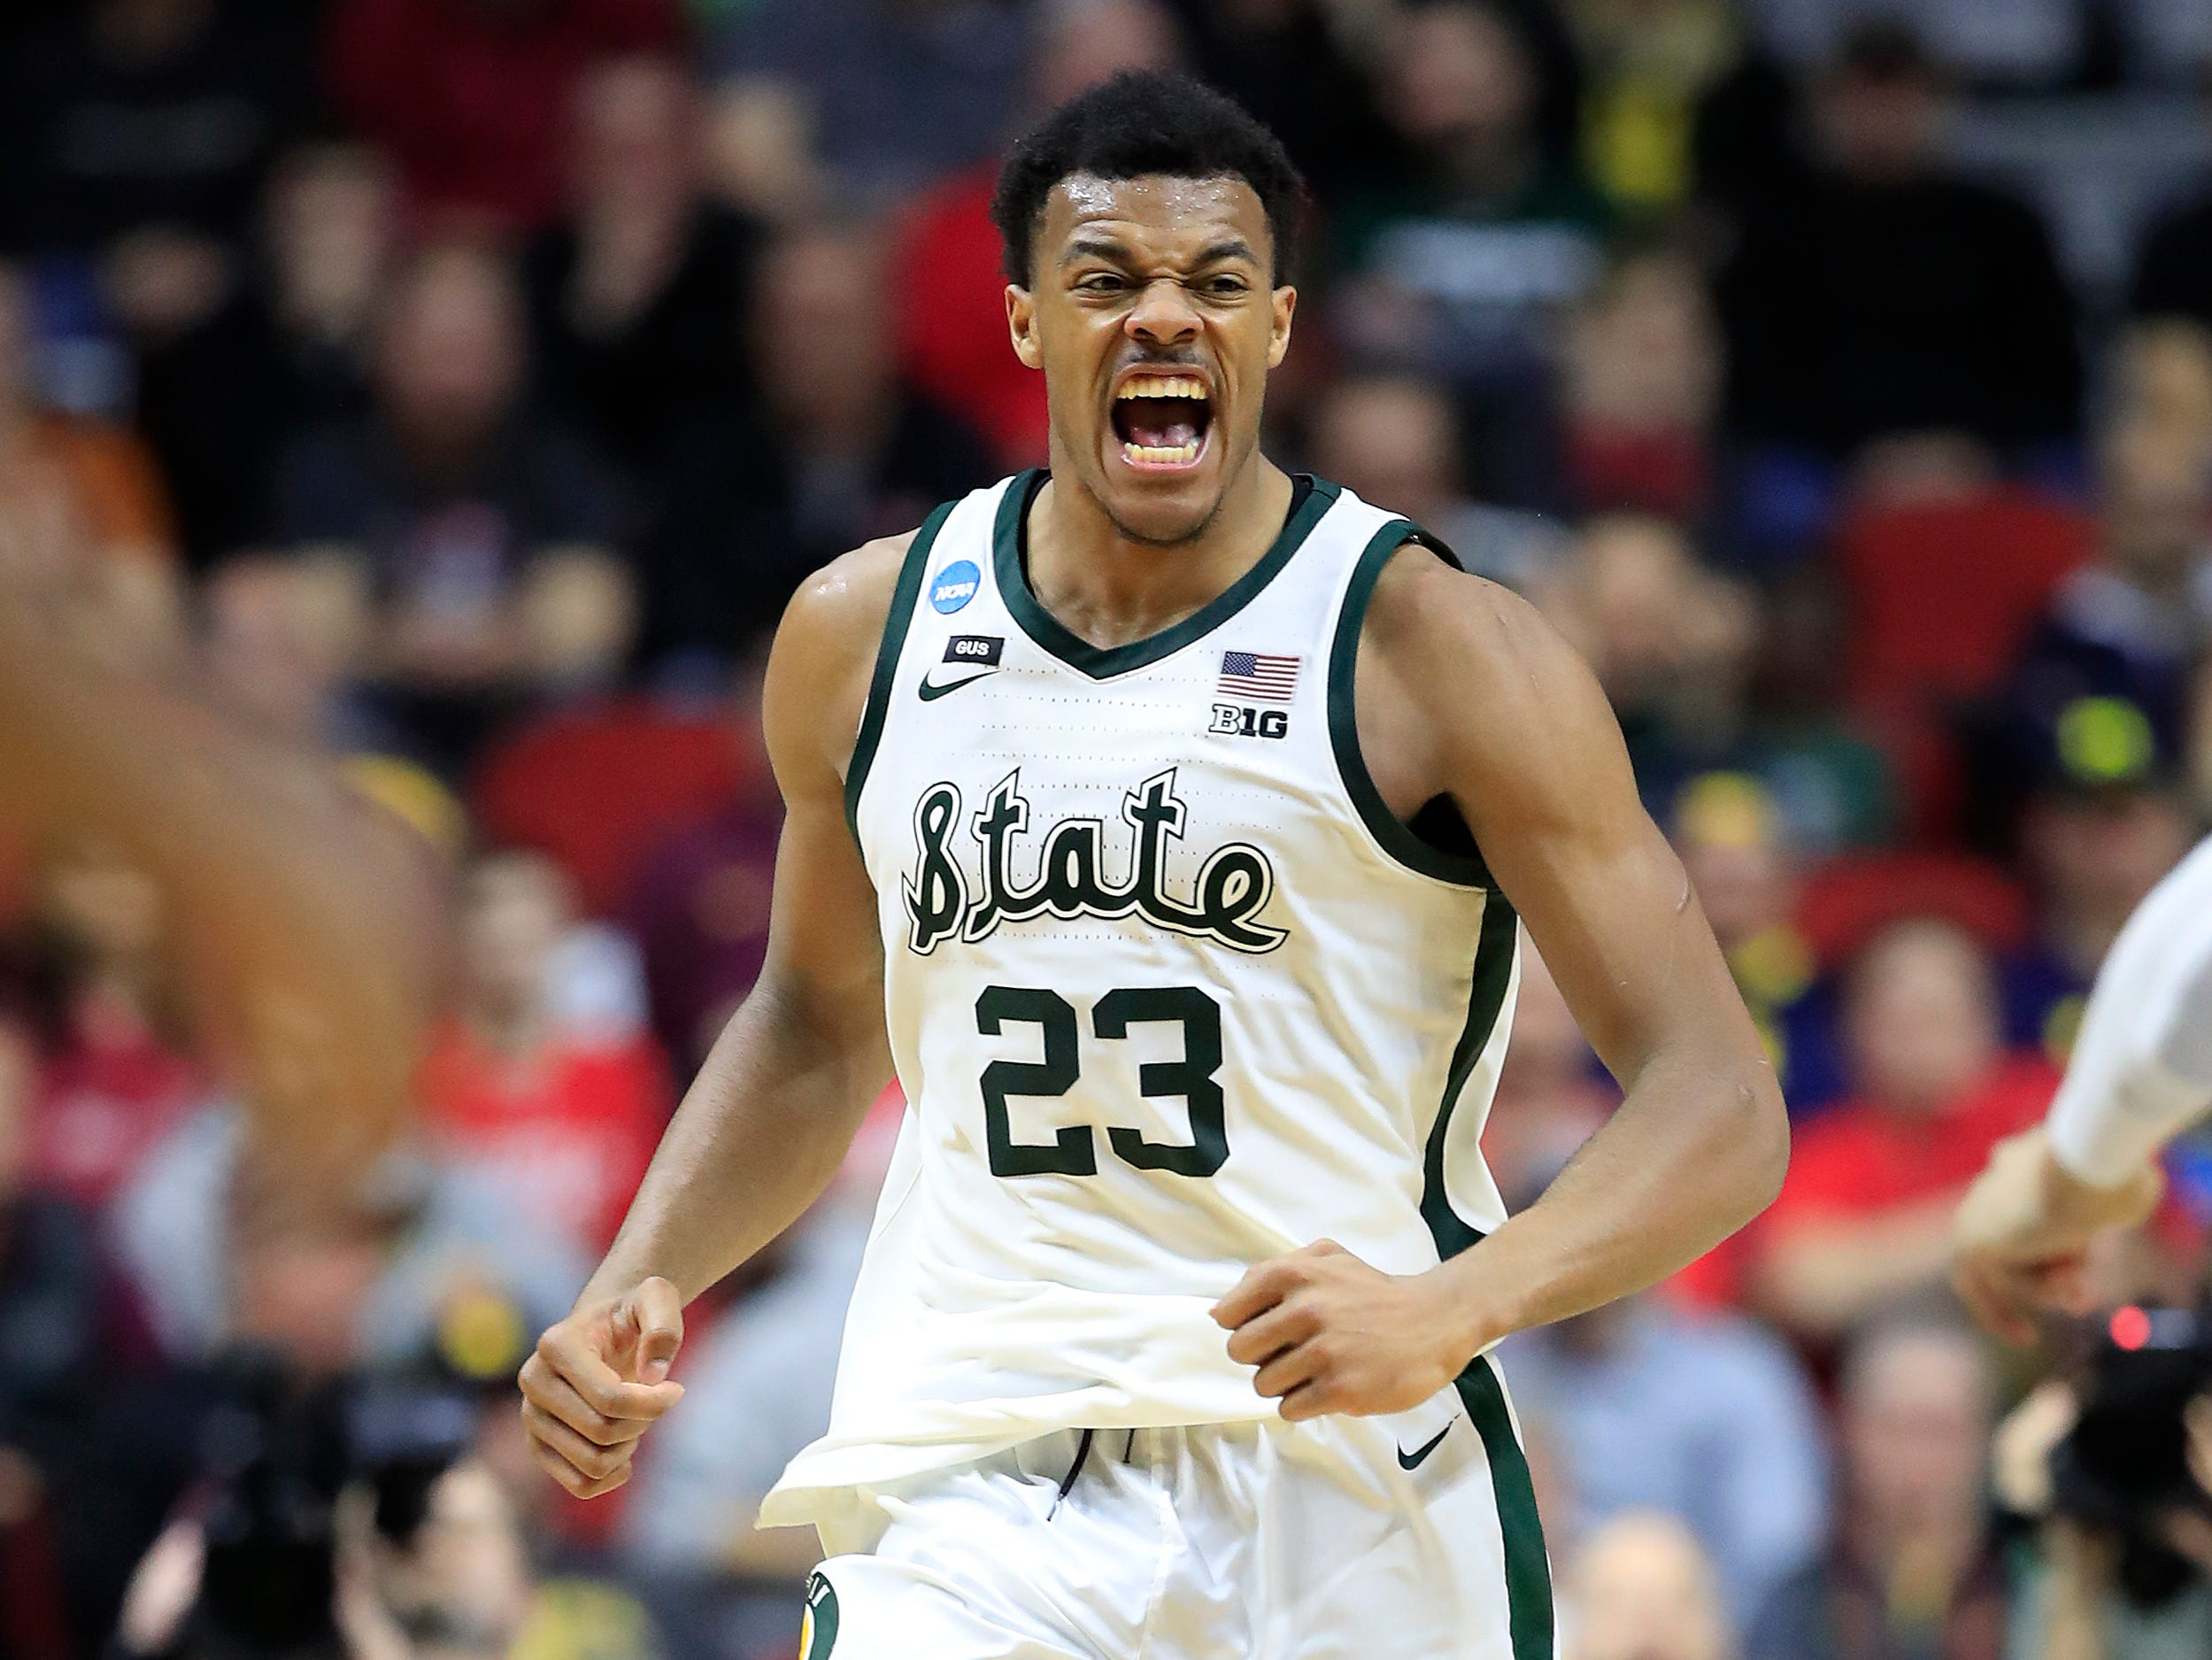 Xavier Tillman #23 of the Michigan State Spartans reacts after a play against the Bradley Braves during their game in the First Round of the NCAA Basketball Tournament at Wells Fargo Arena on March 21, 2019 in Des Moines, Iowa.